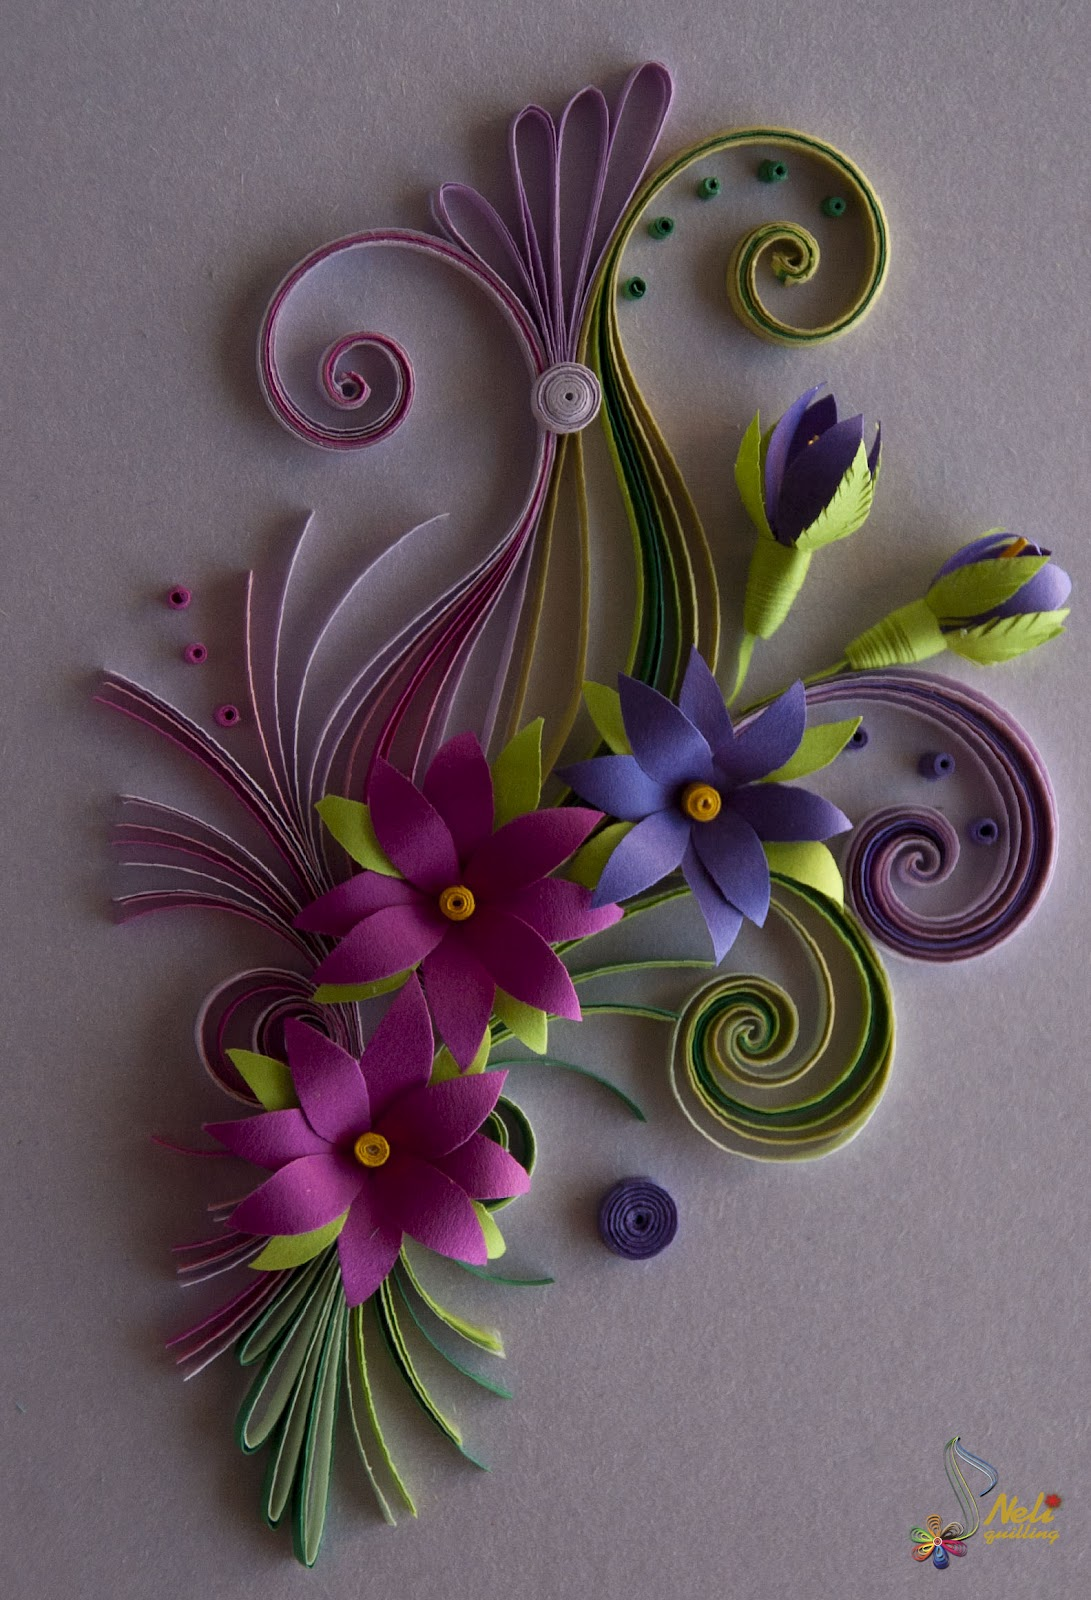 Neli quilling art quilling card flowers for Quilling paper art